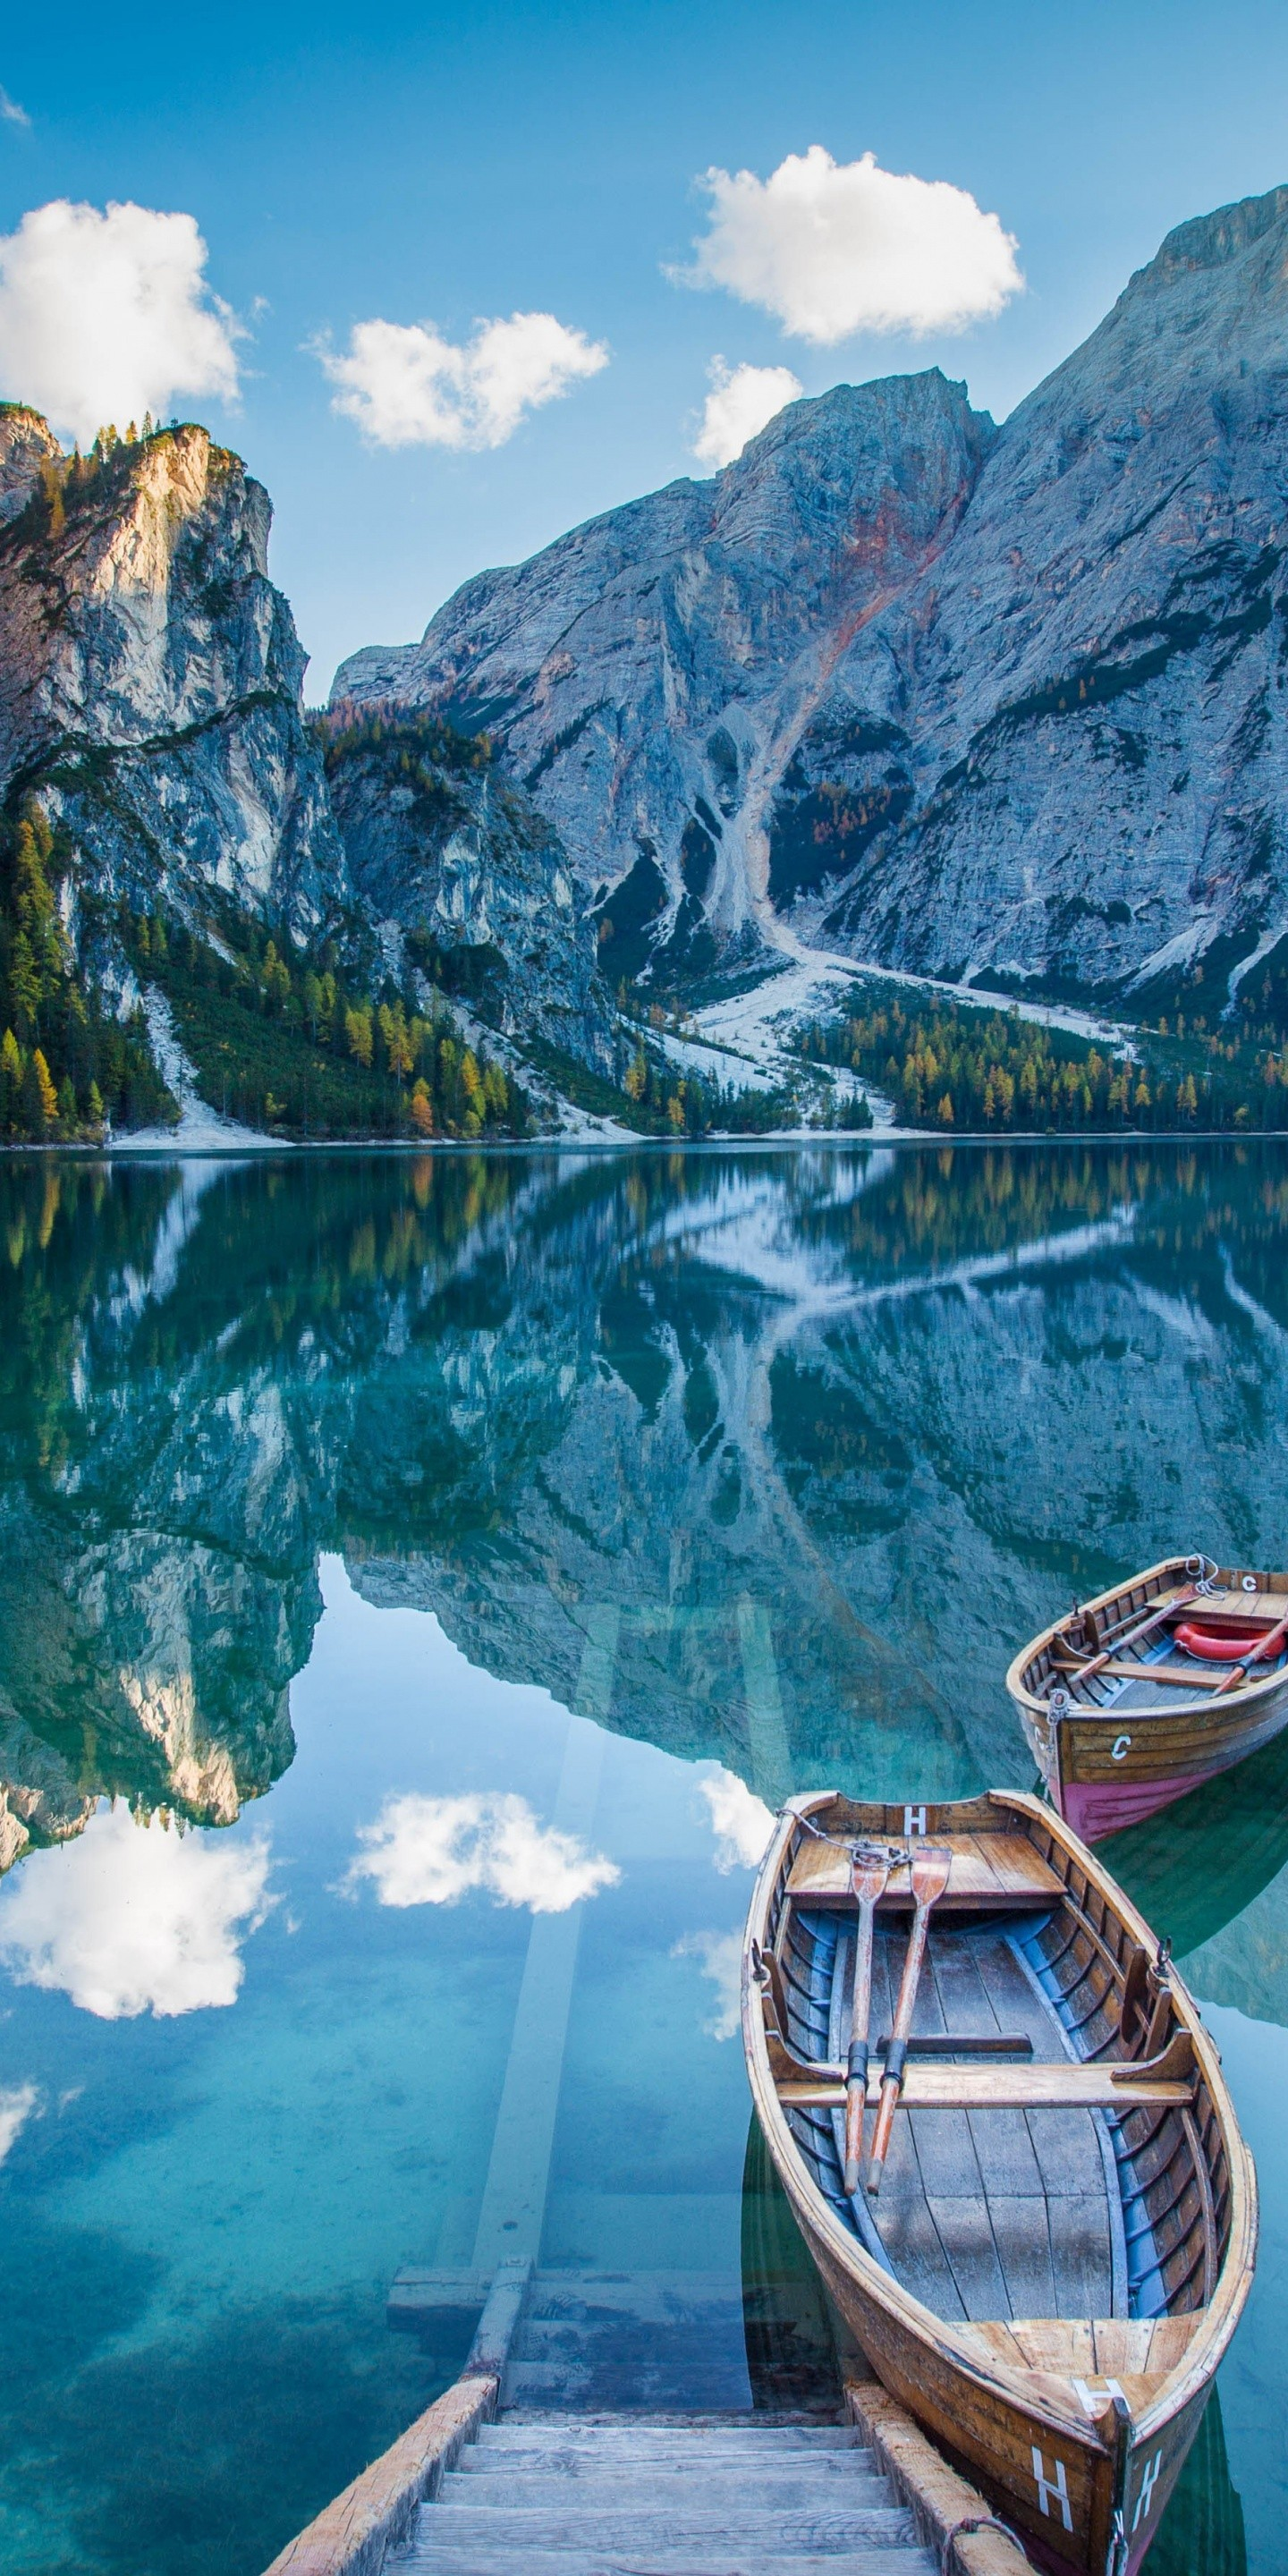 Lake Deck Boat Mountains Mirror